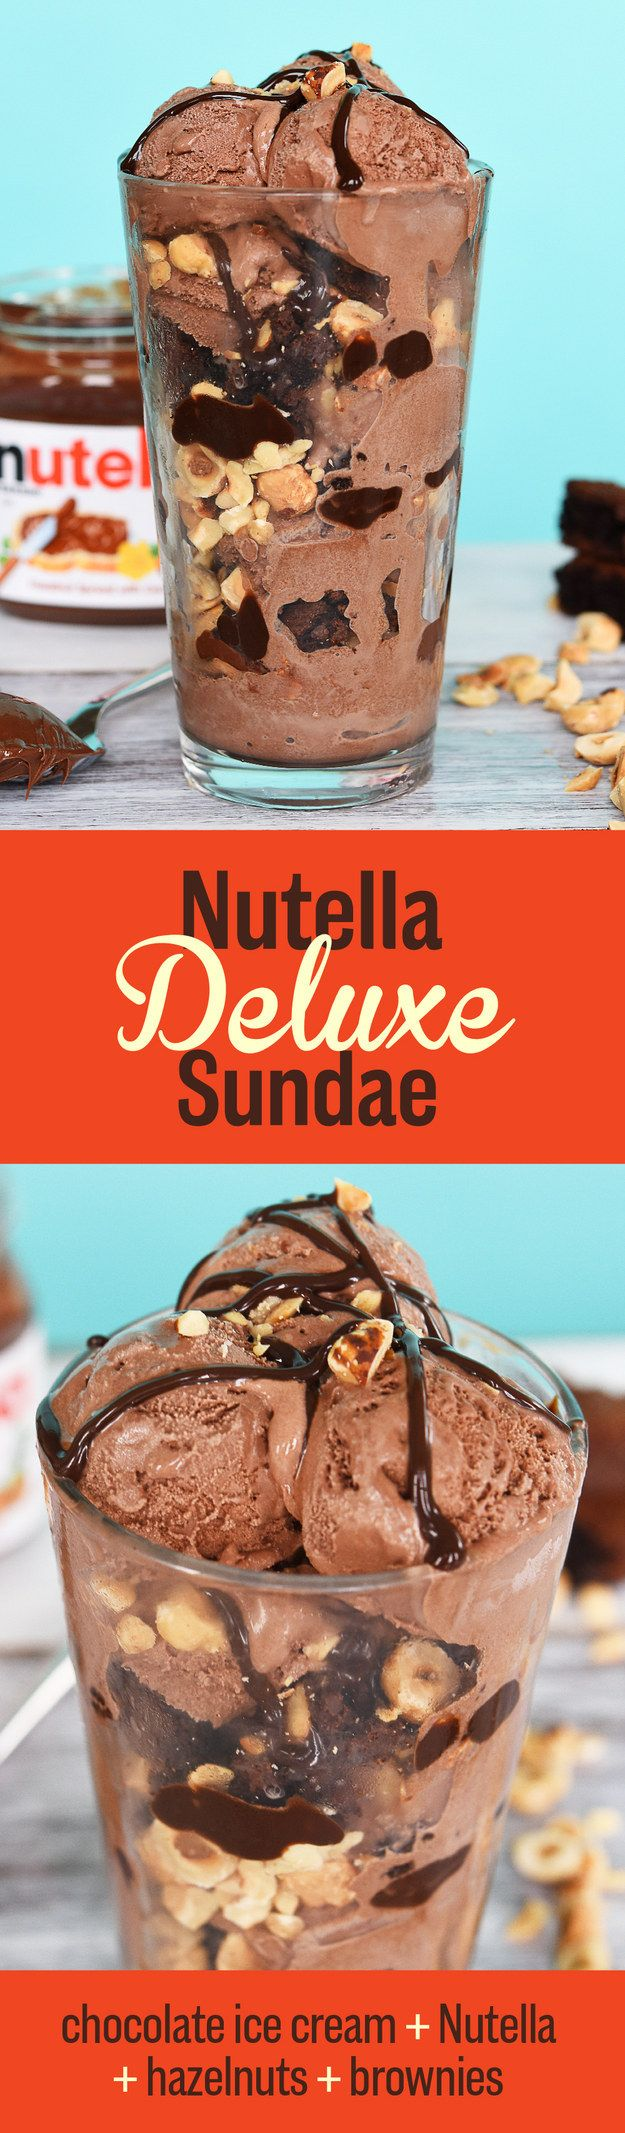 Nutella Deluxe Sundae   7 Insanely Delicious Sundaes You Need To Eat Before Summer Is Over